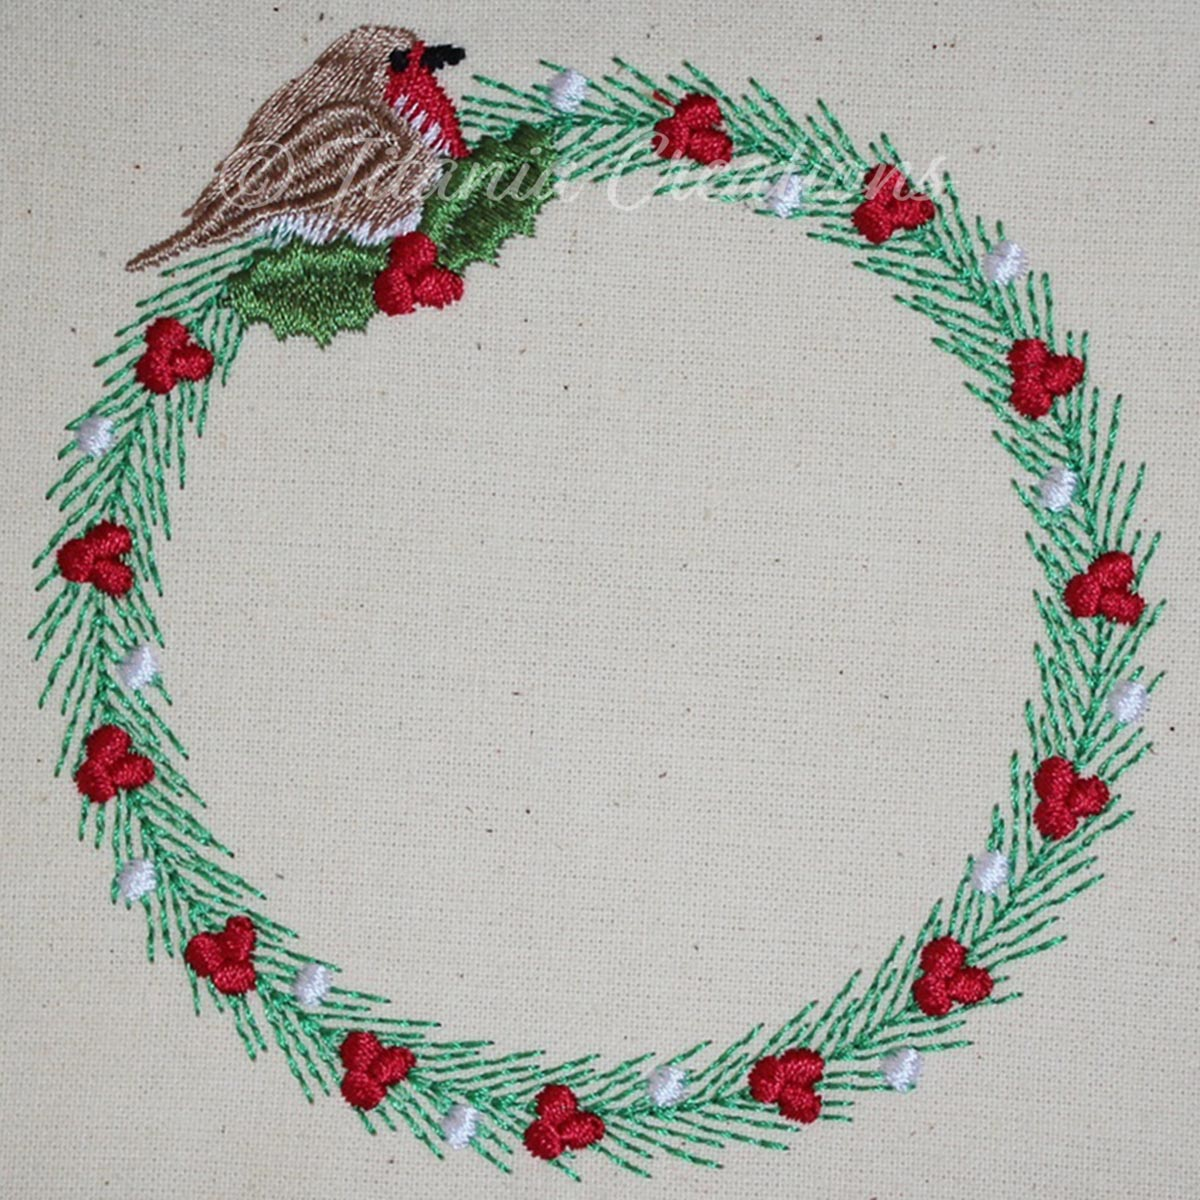 Robin Wreath 4x4 5x7